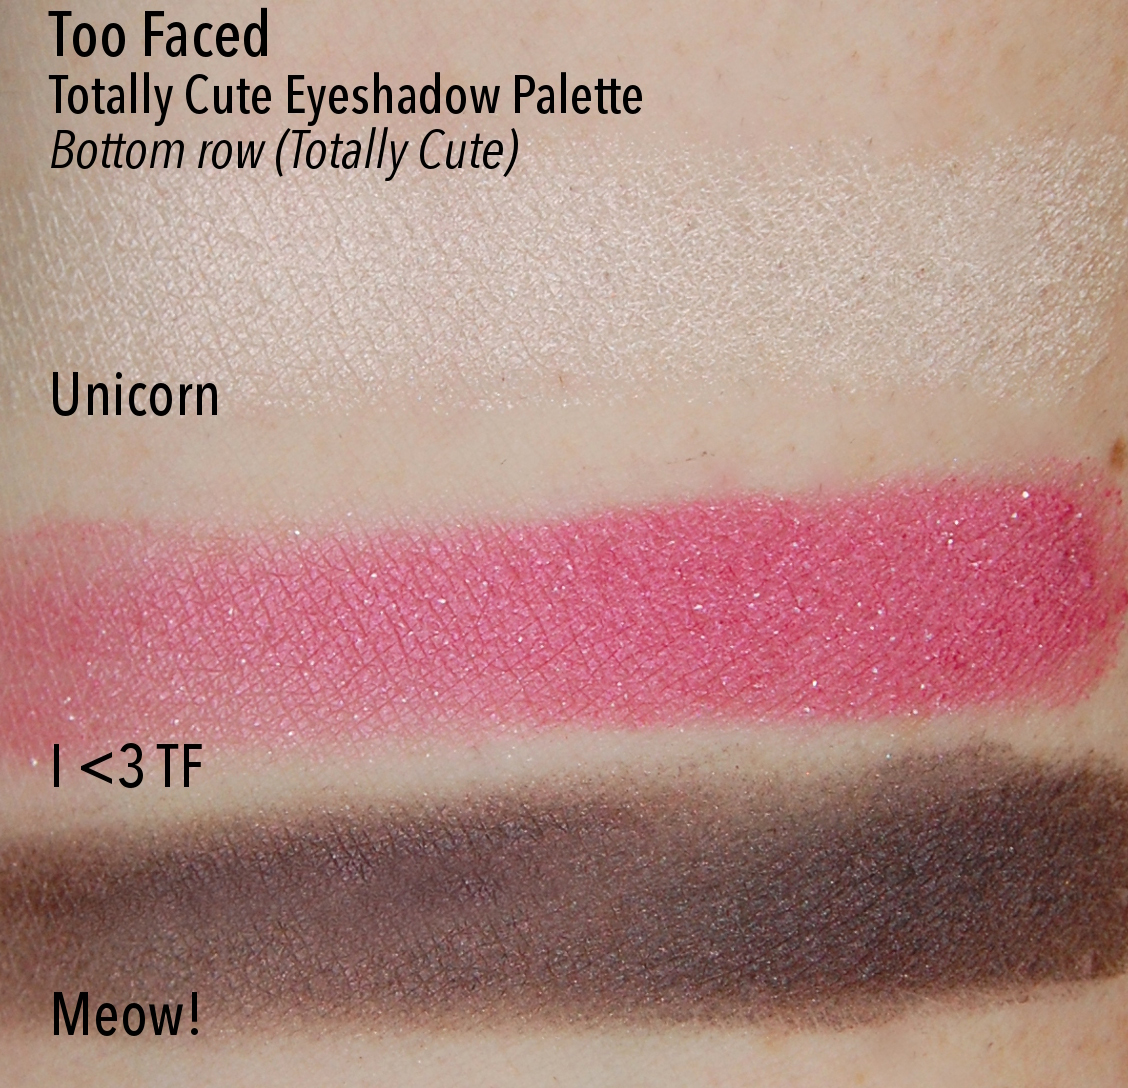 Too Faced Totally Cute Eyeshadow Palette Lucky Girl swatches